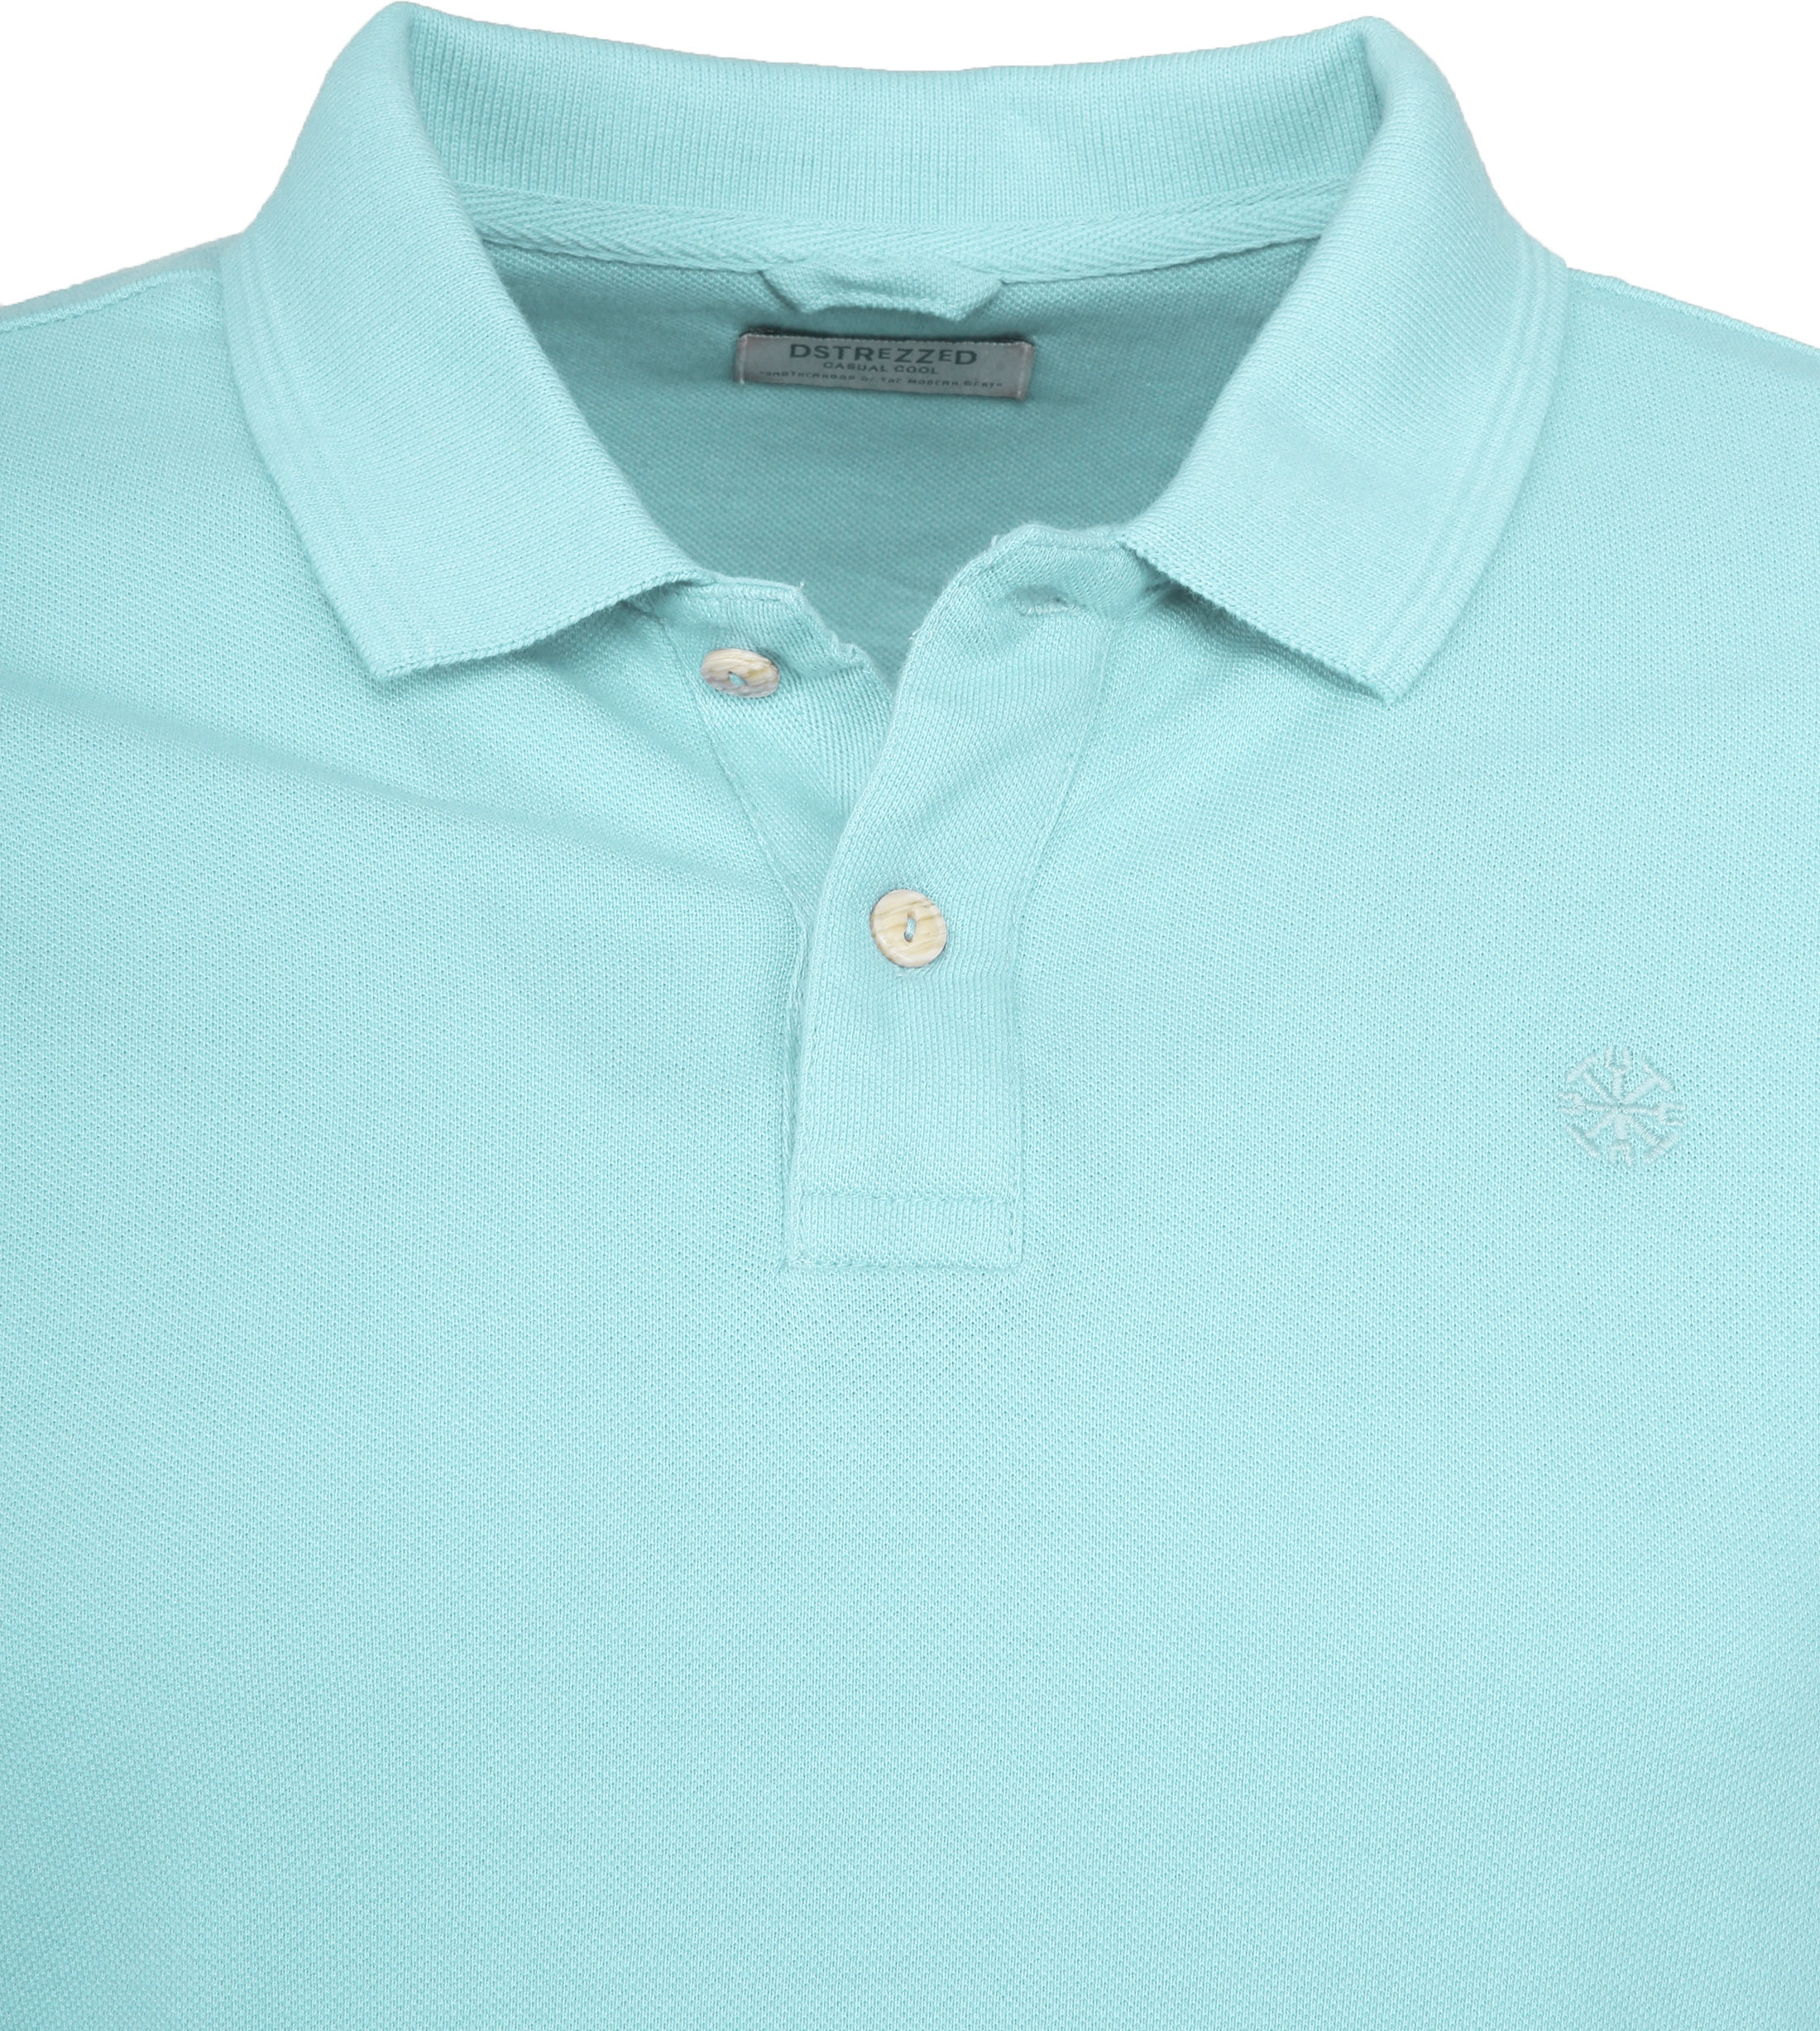 Dstrezzed Bowie Poloshirt Turquoise foto 1